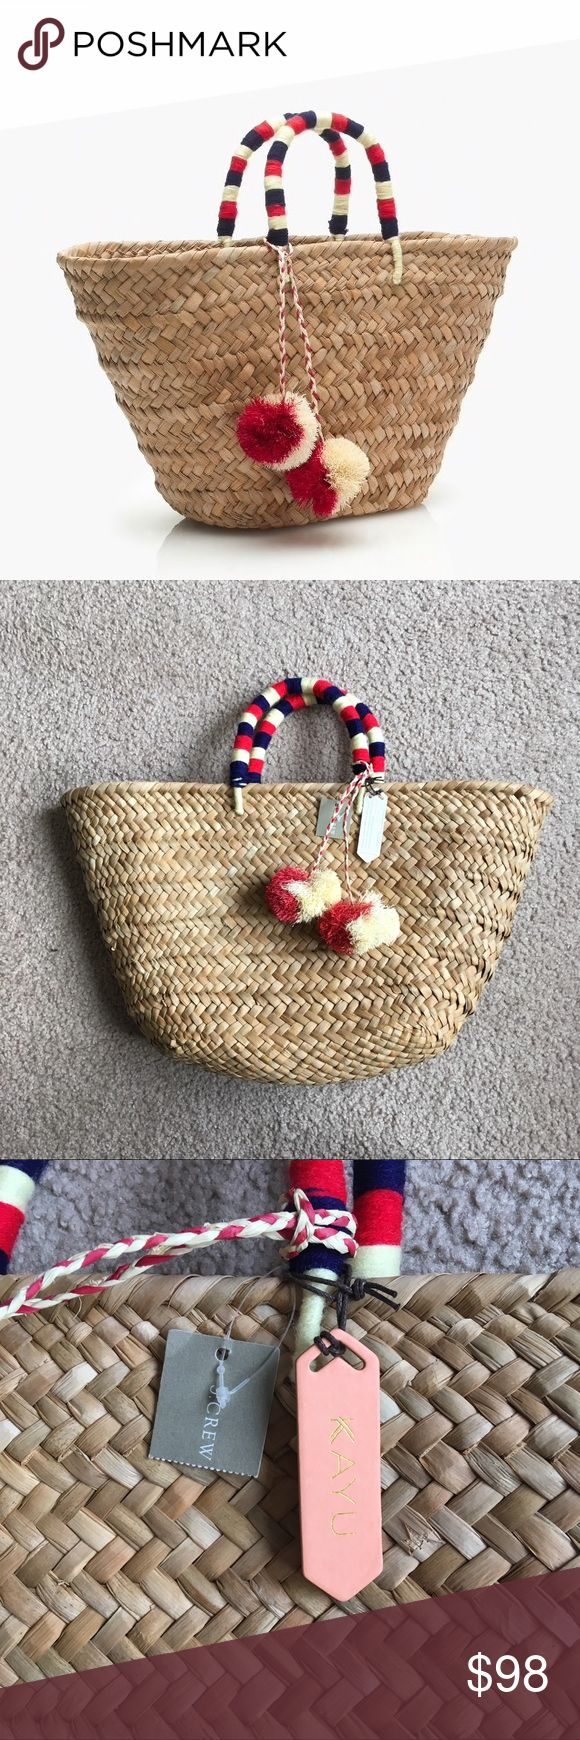 NEW J. Crew Kayu St. Tropez handmade woven tote NWT handcrafted Kayu St. Tropez beach tote bag in collaboration with J. Crew. Woven by female artisans in the Philippines. Red white and blue wrapped handles with red and cream pom pom tassels. The pom poms are a little squished from storage. See measurements in stock photo.  15% off 2+ bundles! J. Crew Bags Totes